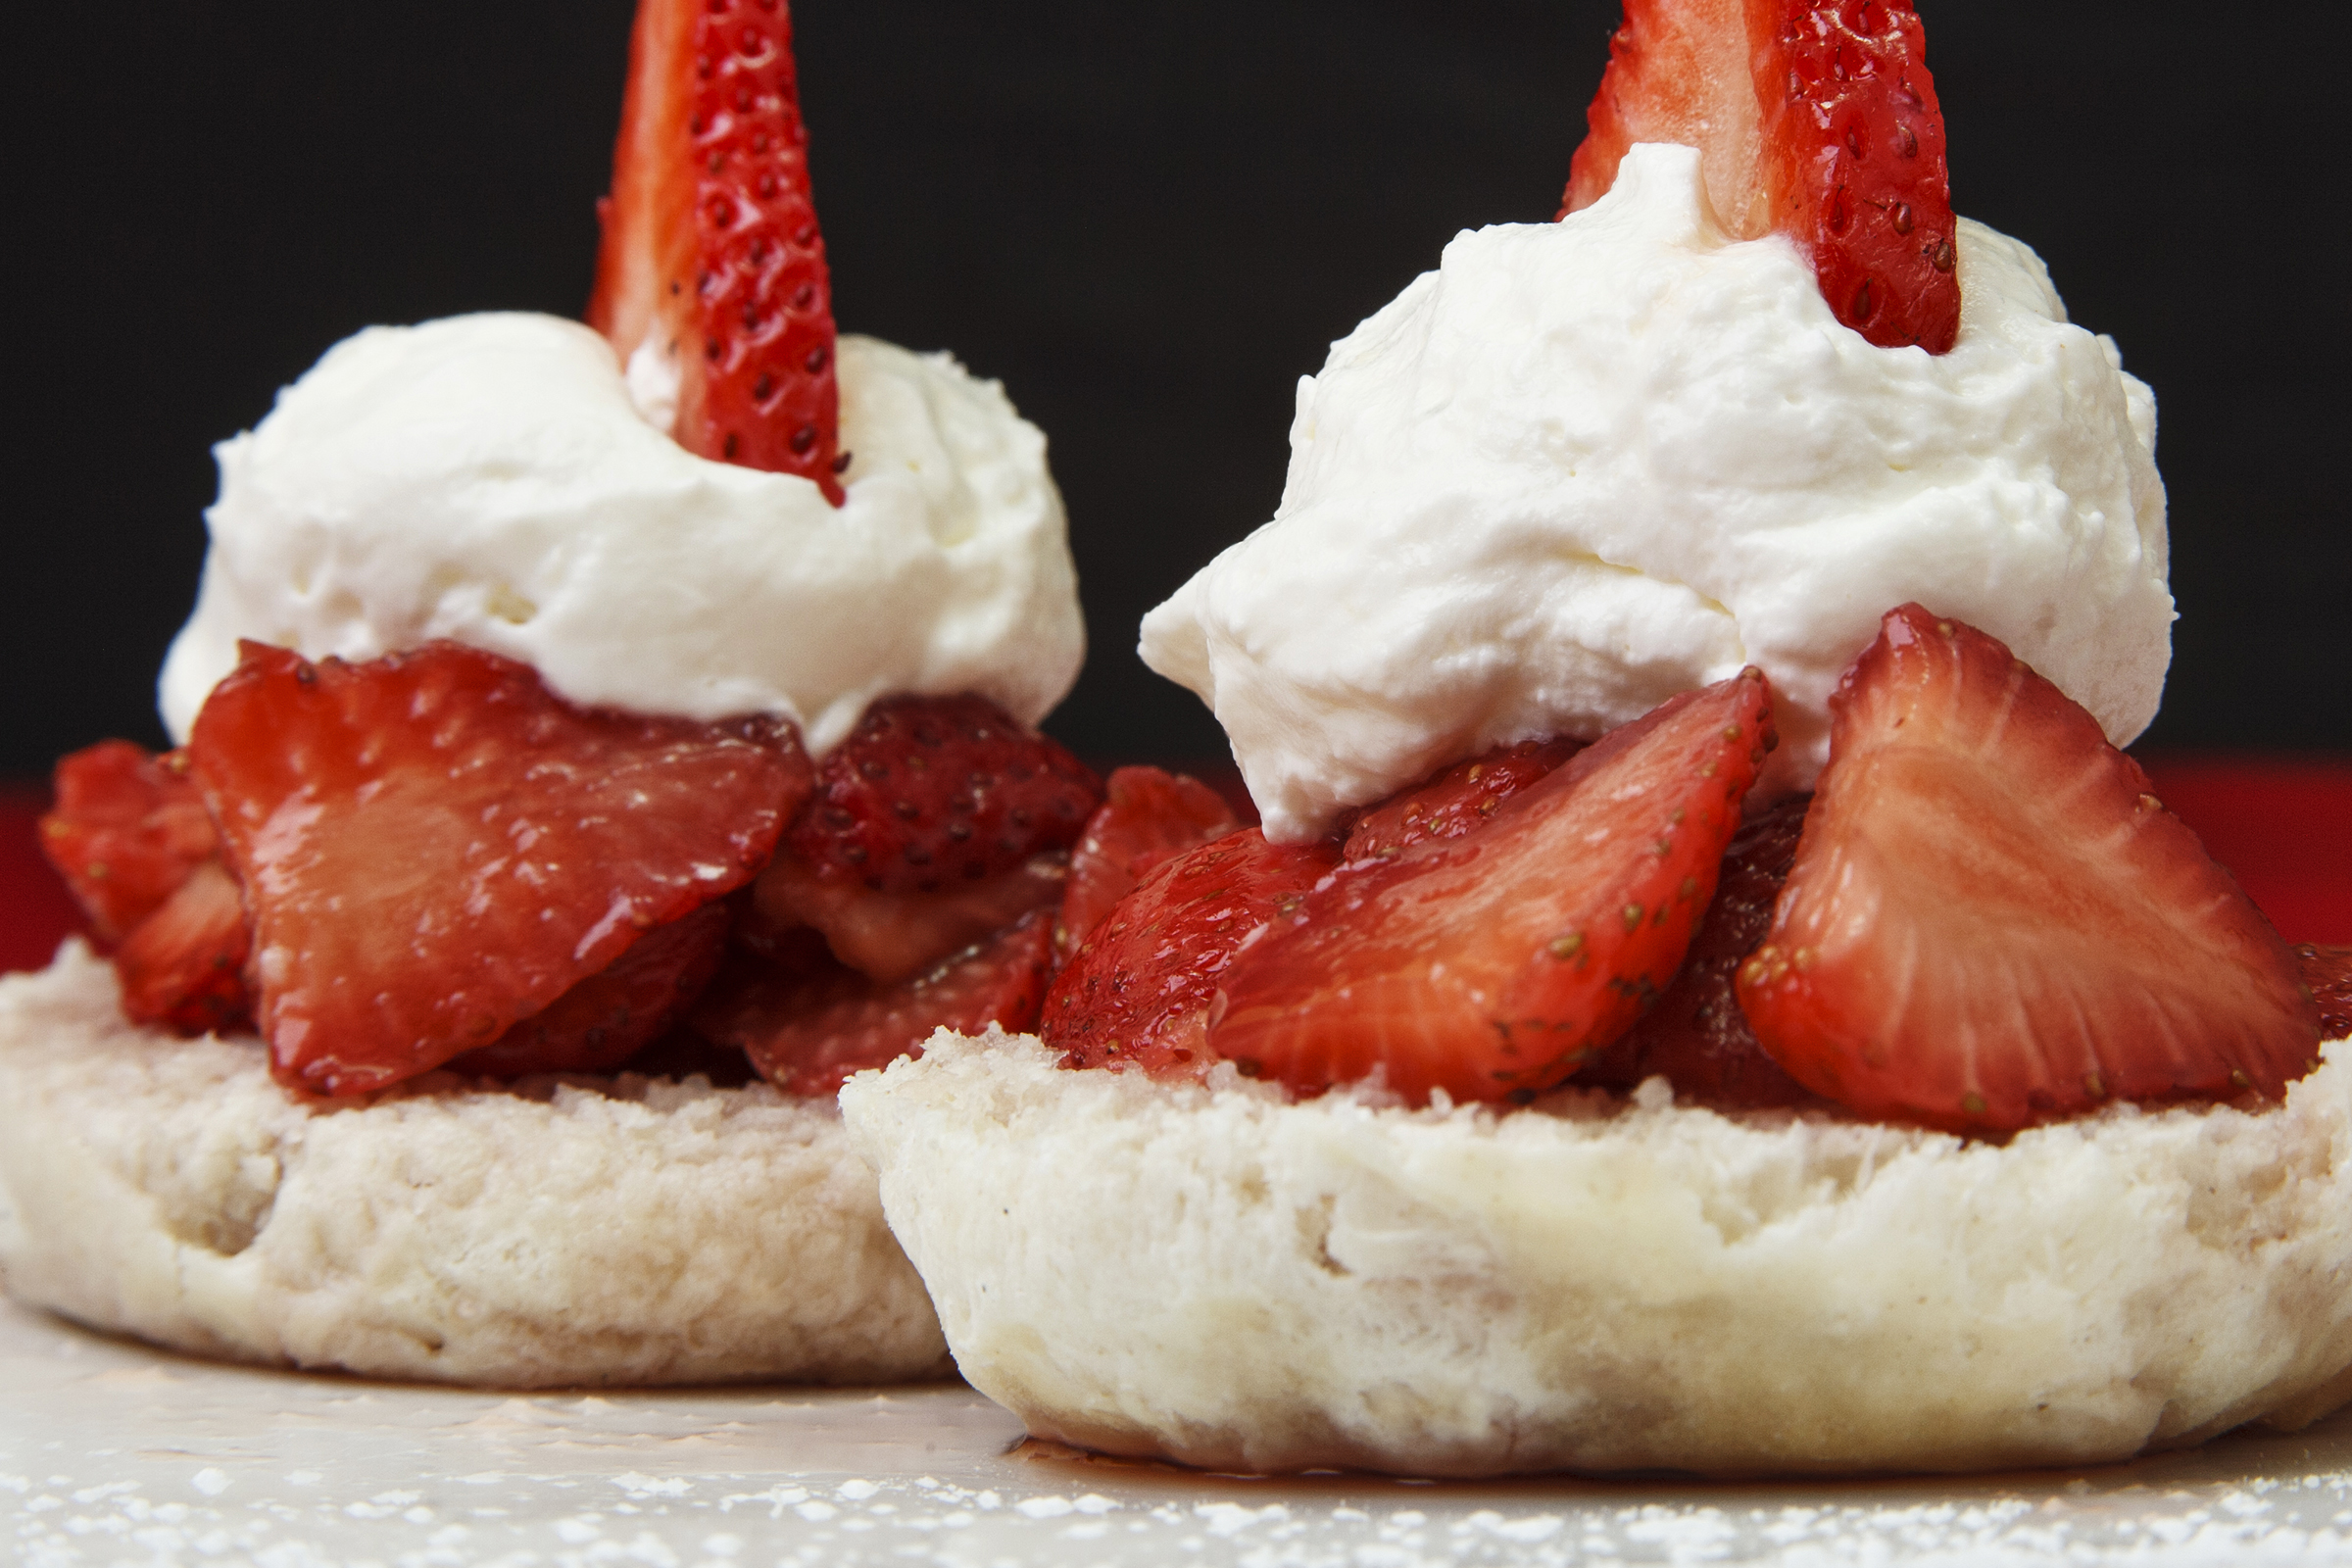 Strawberry-Shortcake-Sliders.jpeg